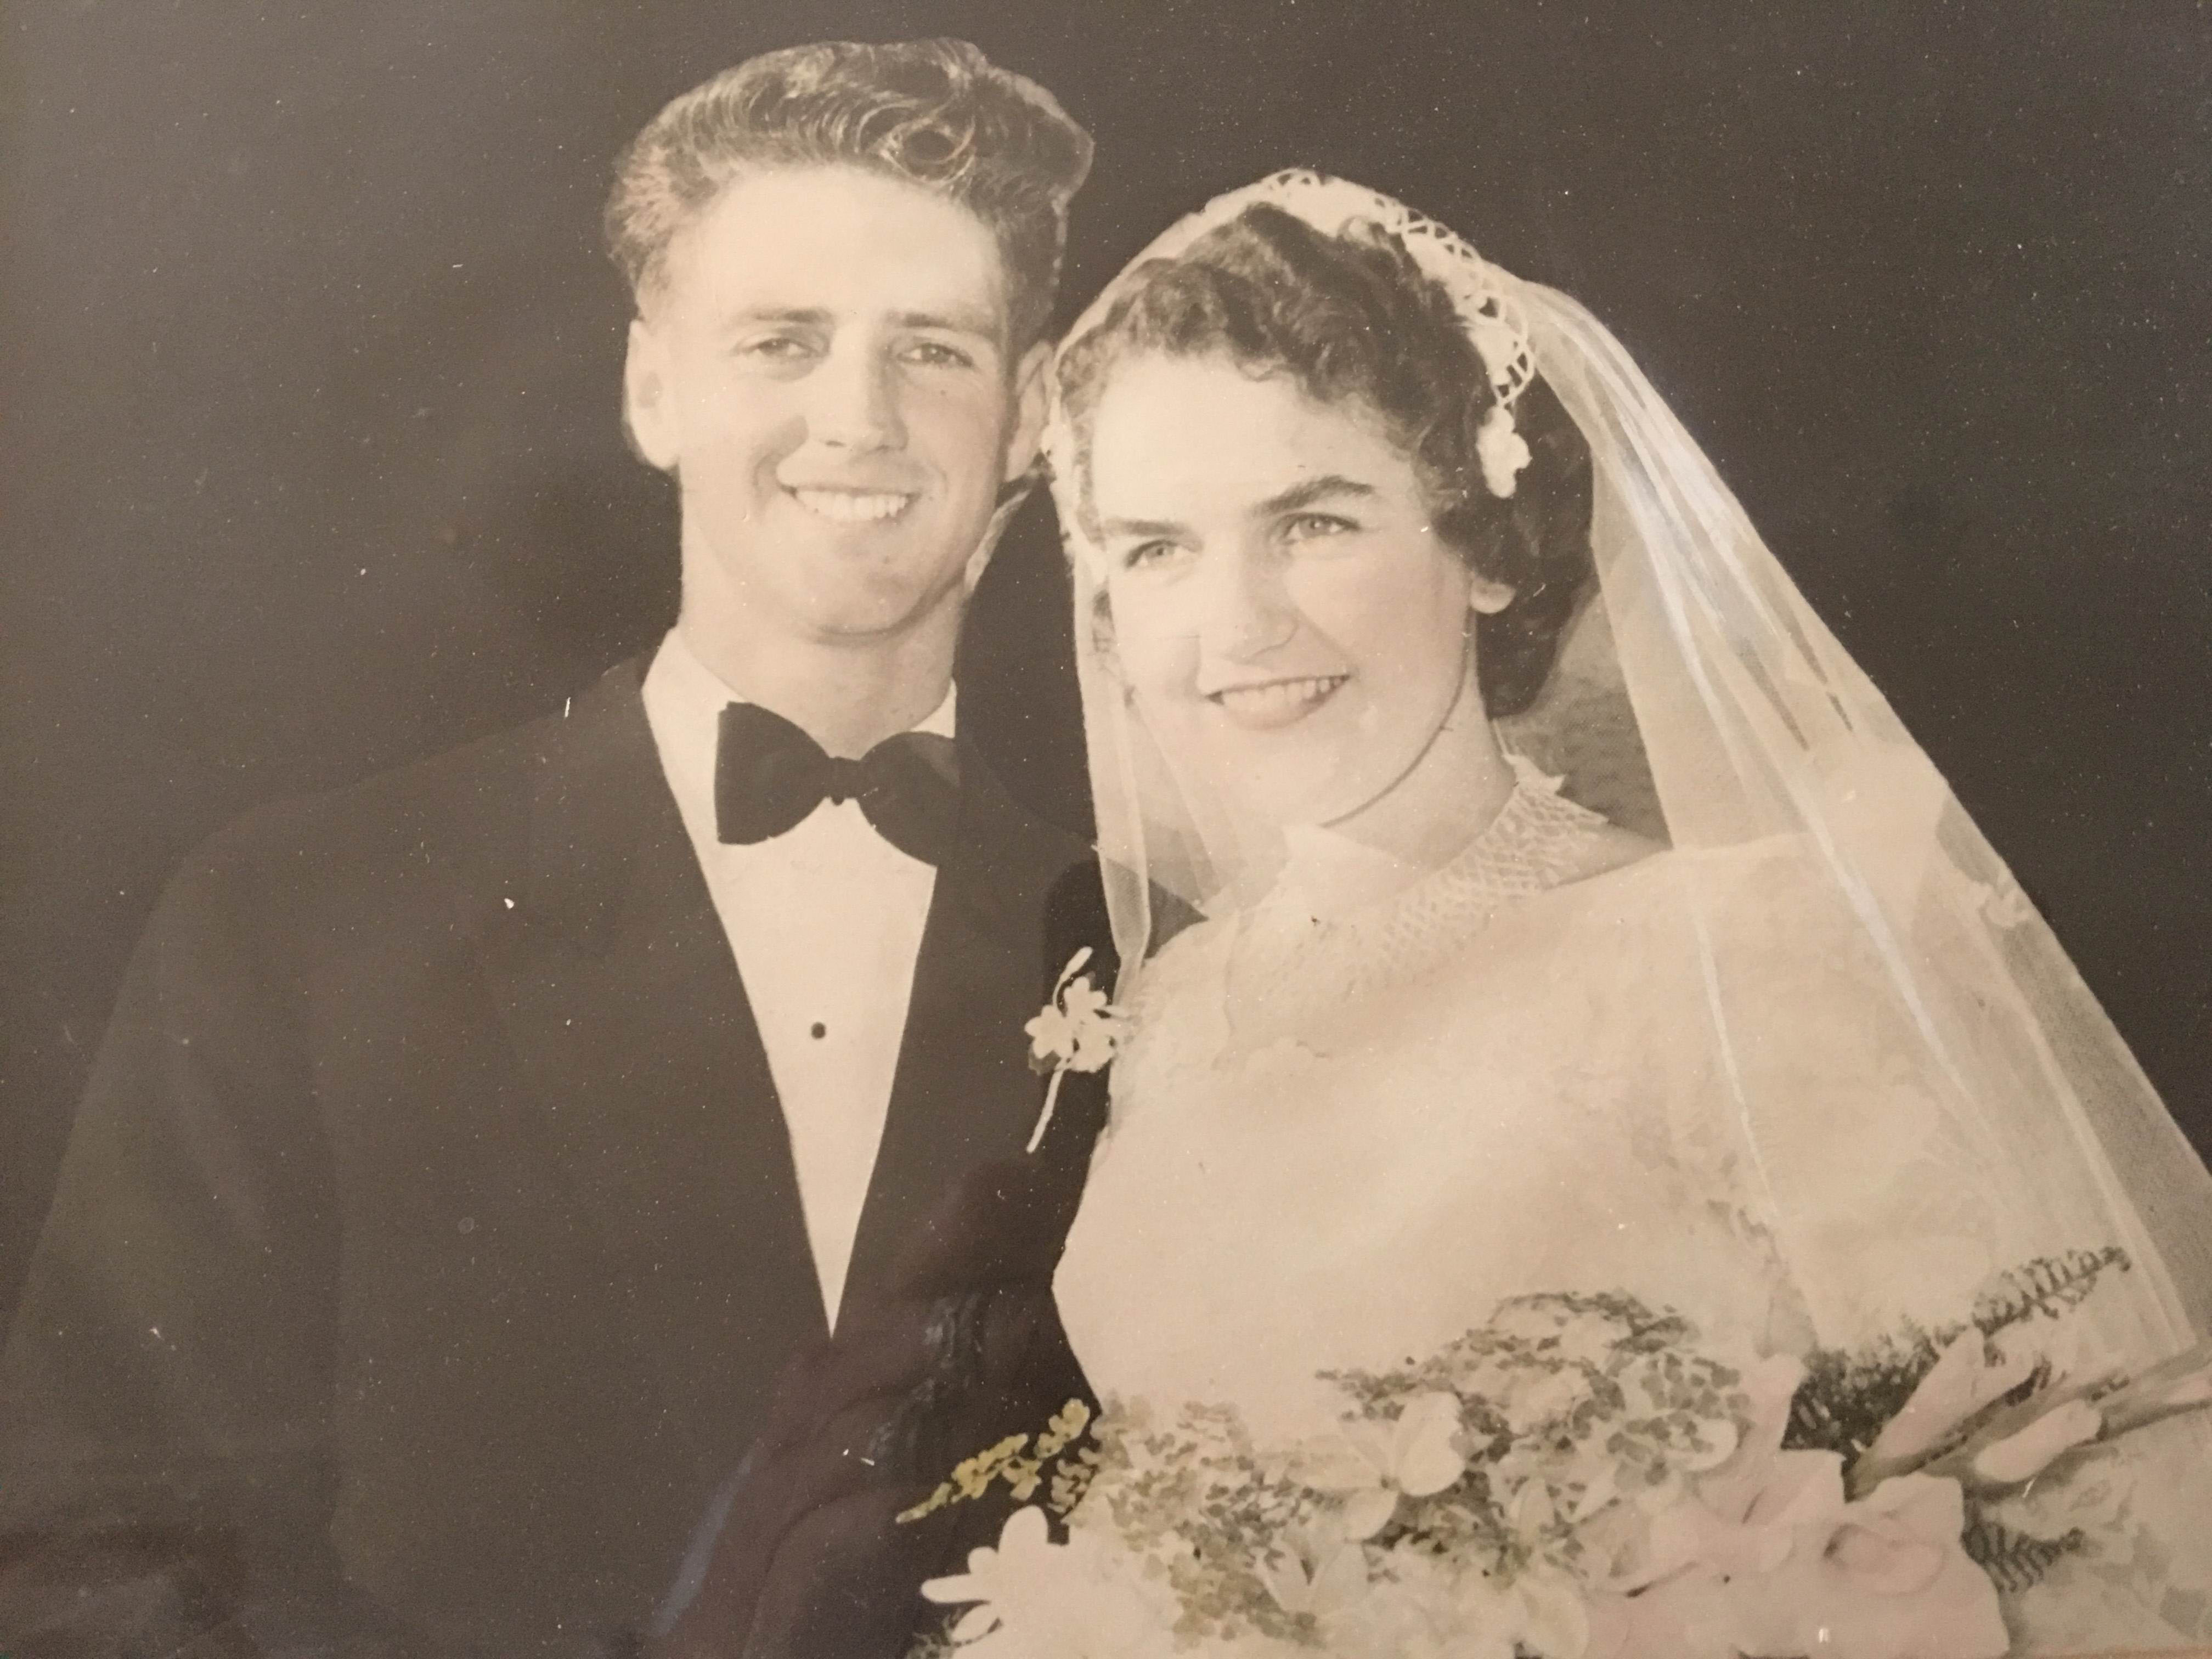 Mal and Alma Dempsey on their wedding day 60 years ago.